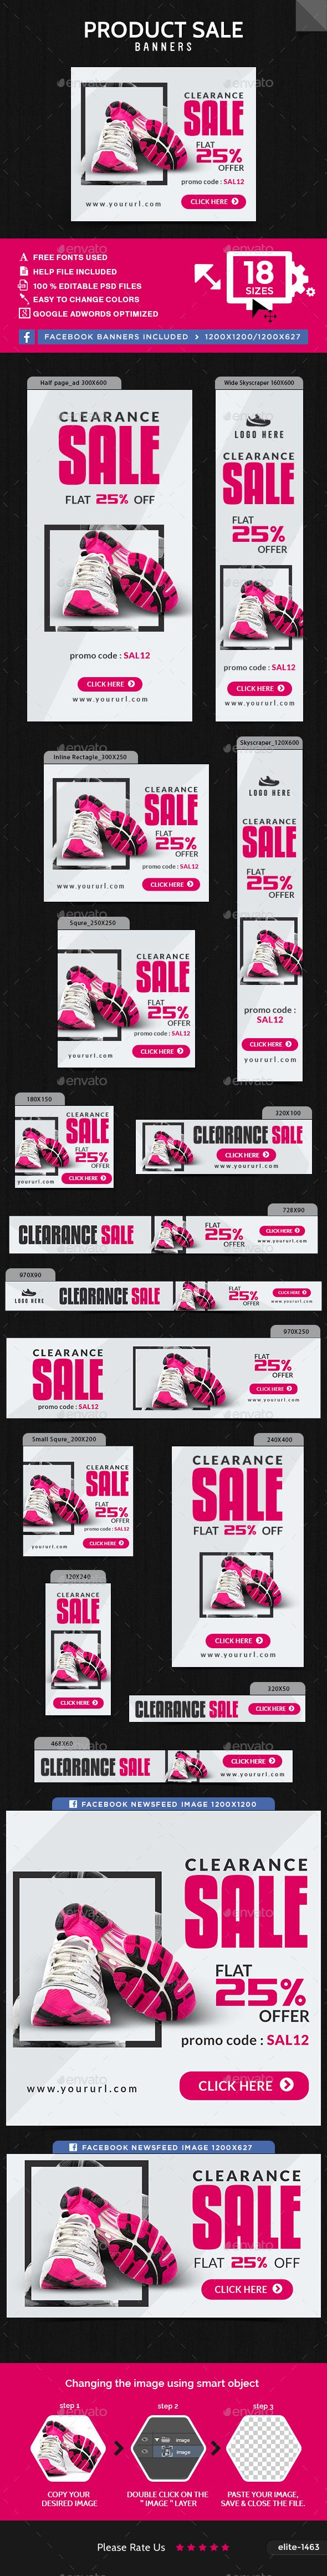 Product Sale Web Banners Template PSD. Download here…